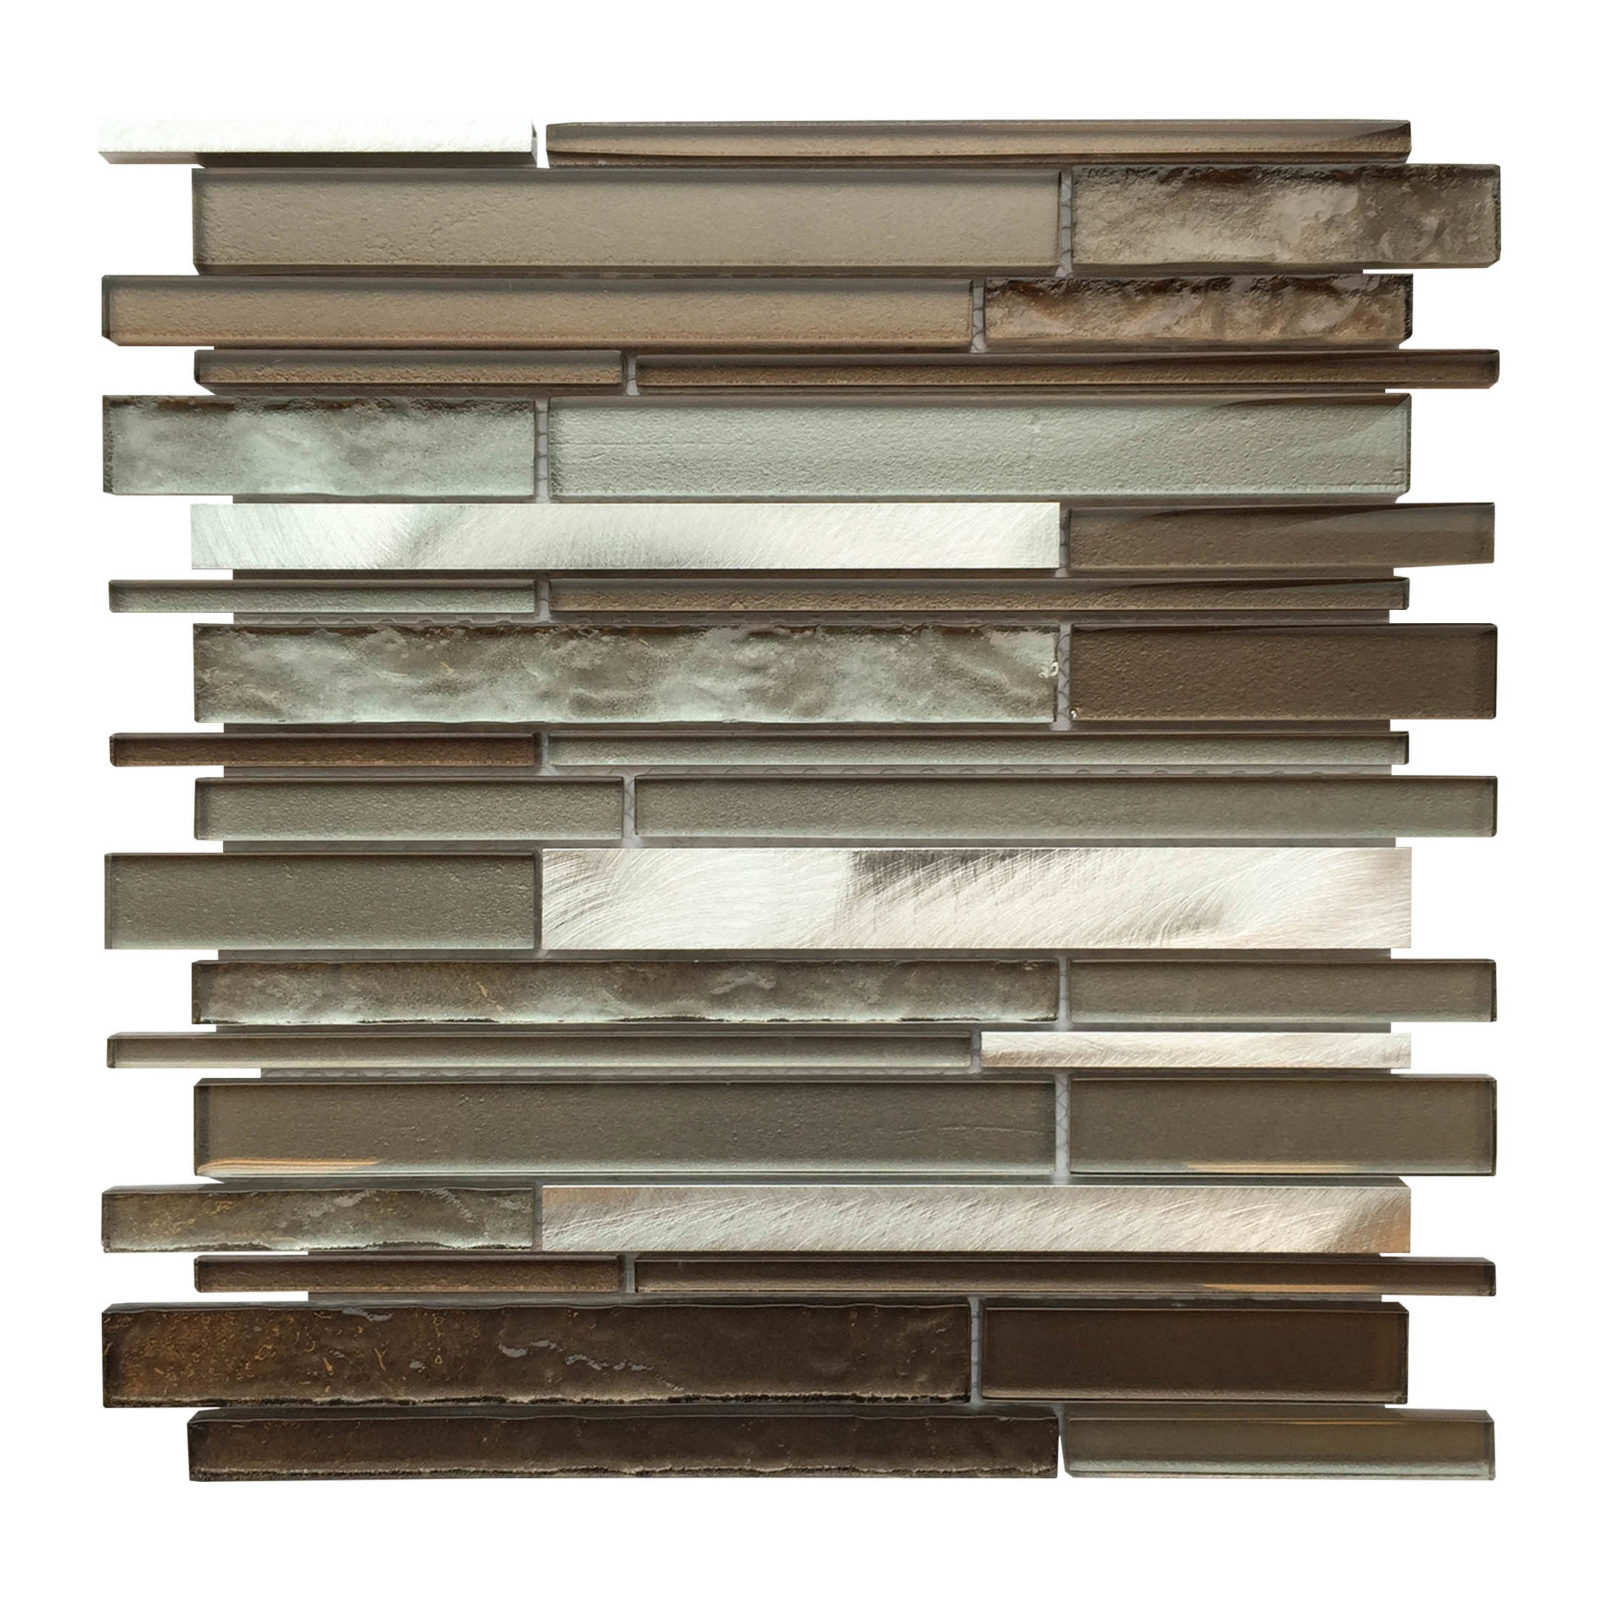 Al3300 Glass Tile And Stone Strip Mosaic Backsplash